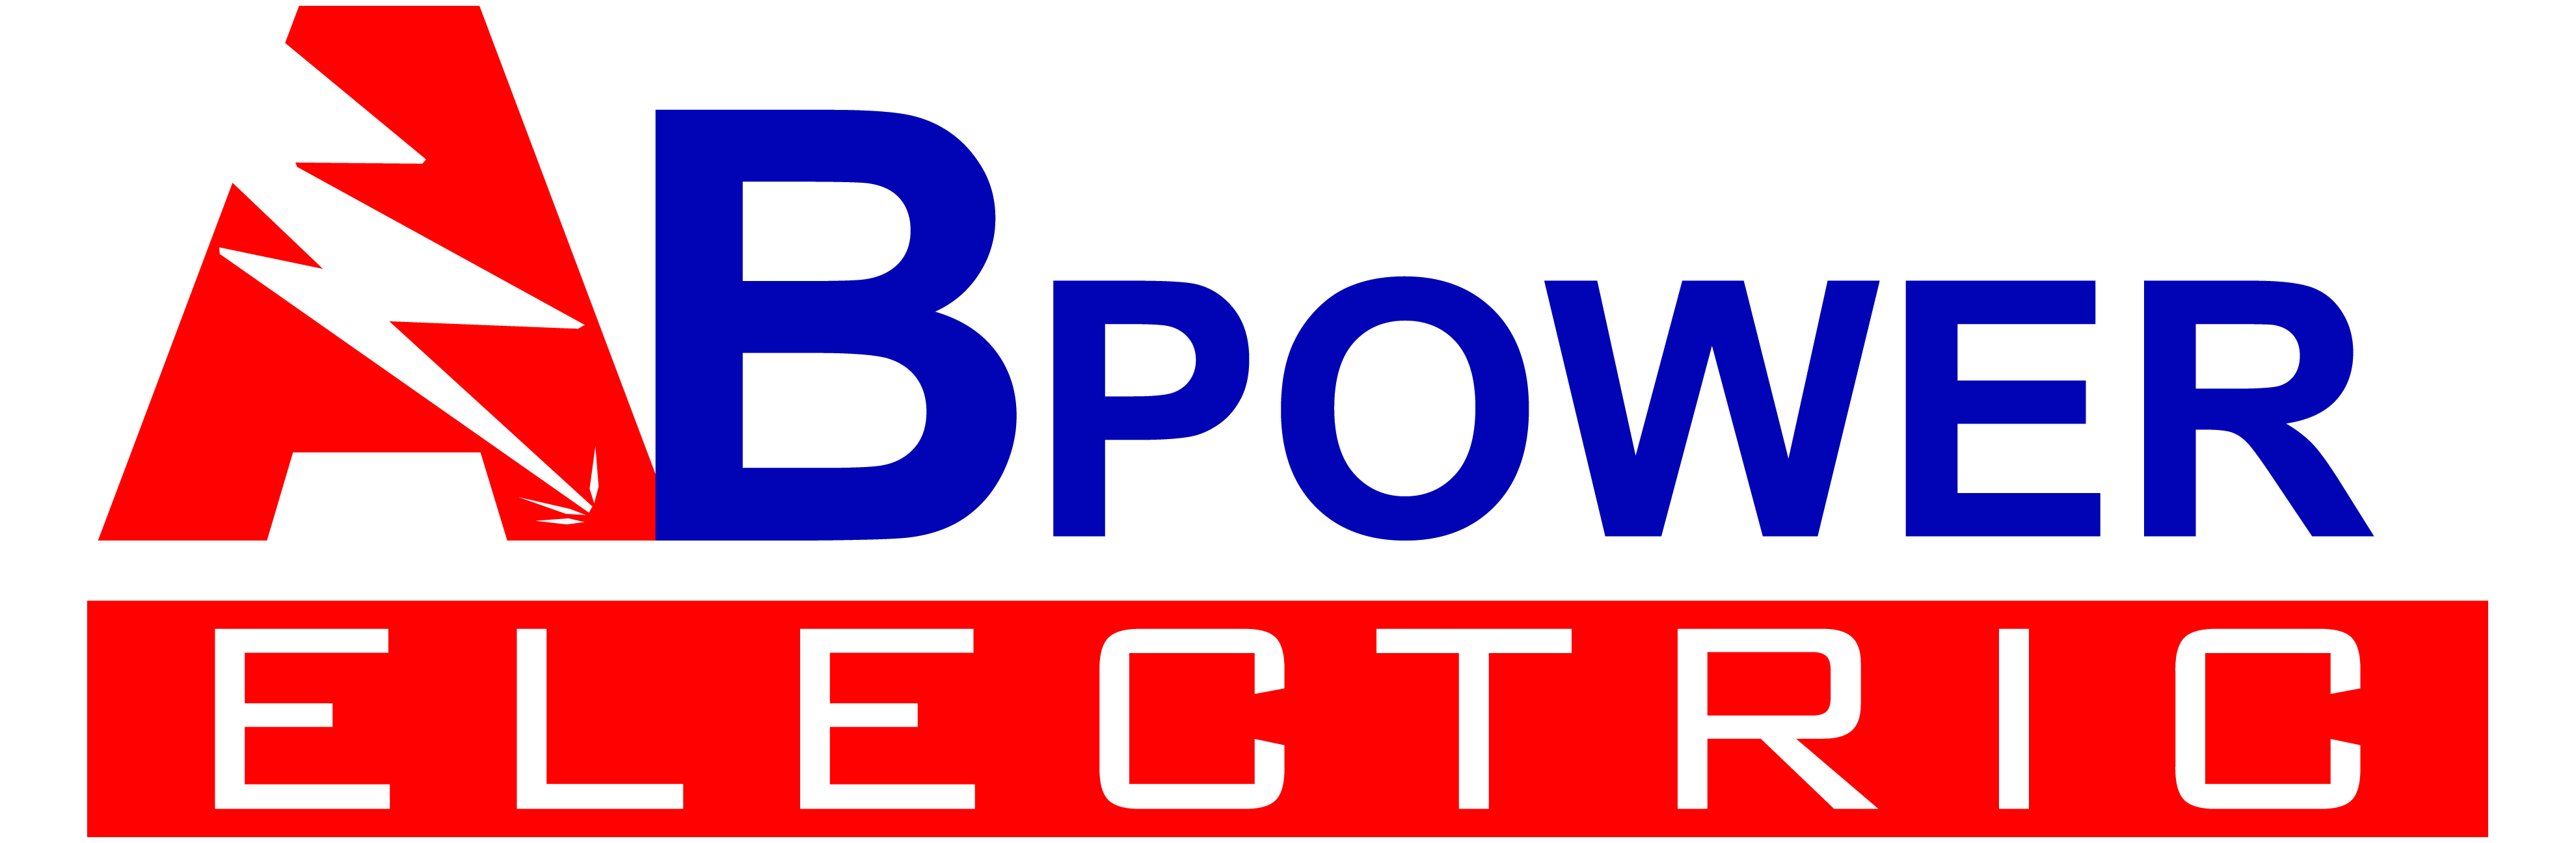 AB Power Electric